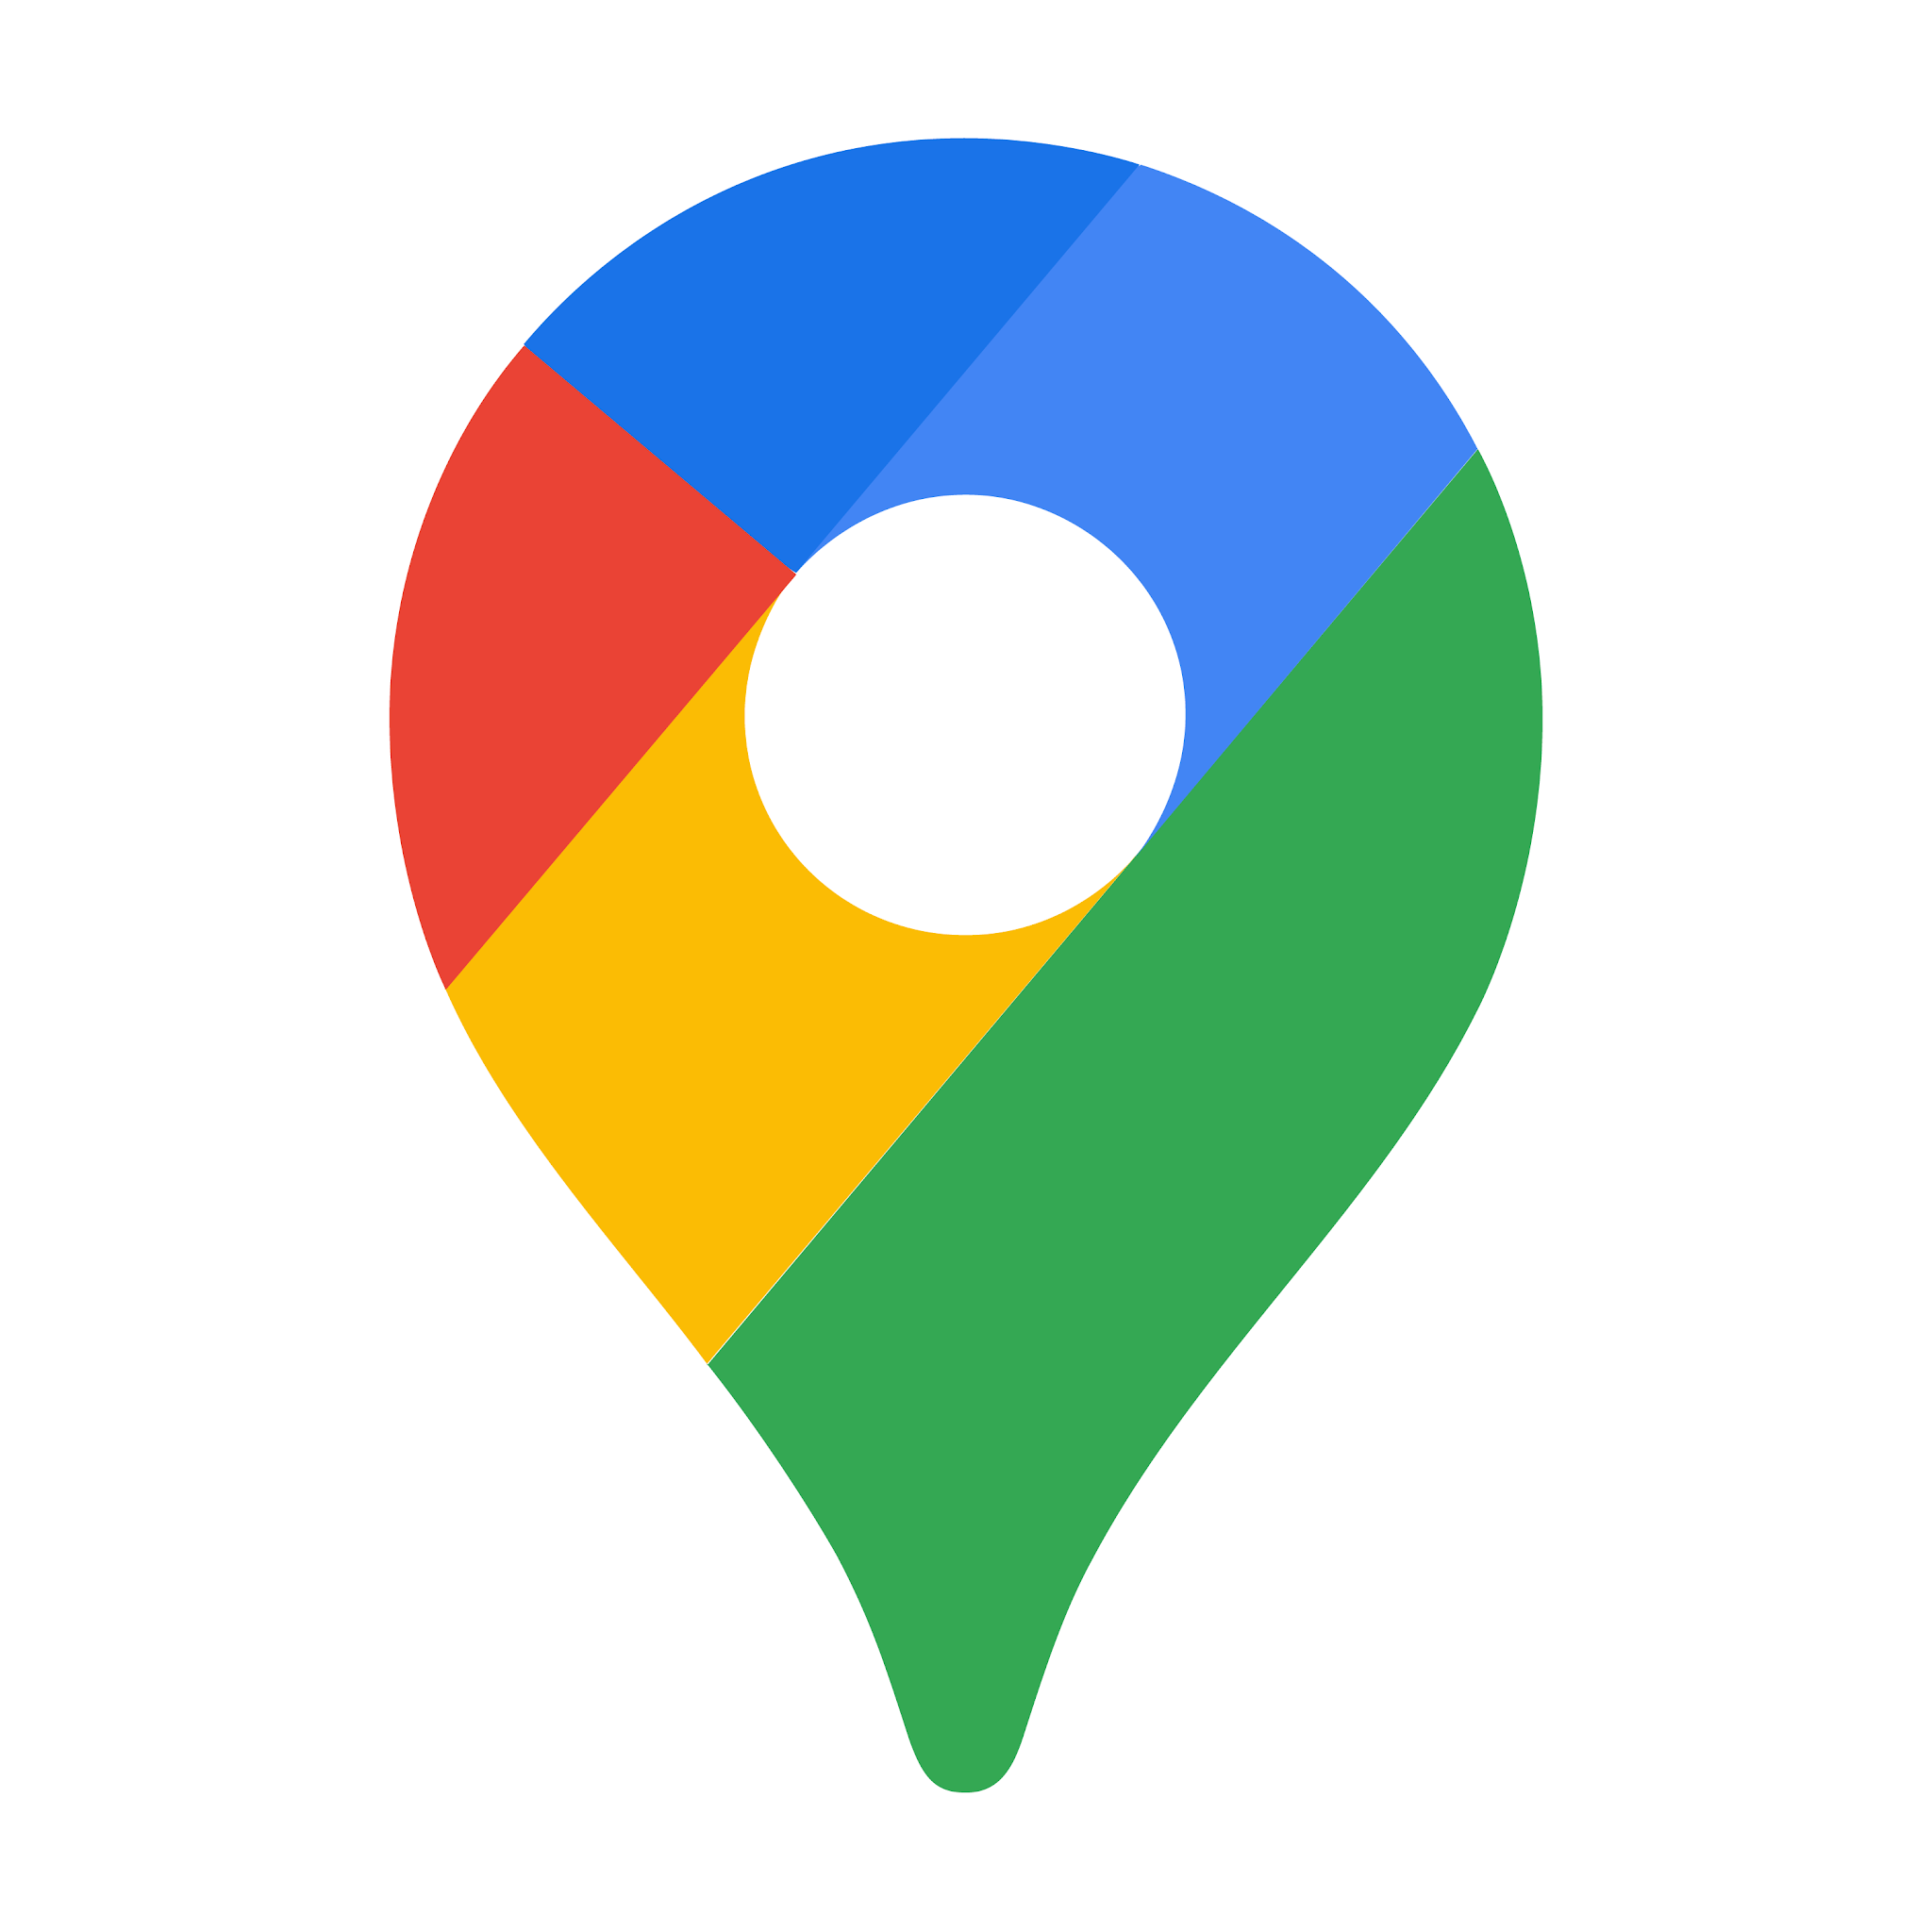 download google maps logo svg eps png psd ai vector color free new 2020 #logo #maps #svg #eps #google #psd #vector #vectors #art #free